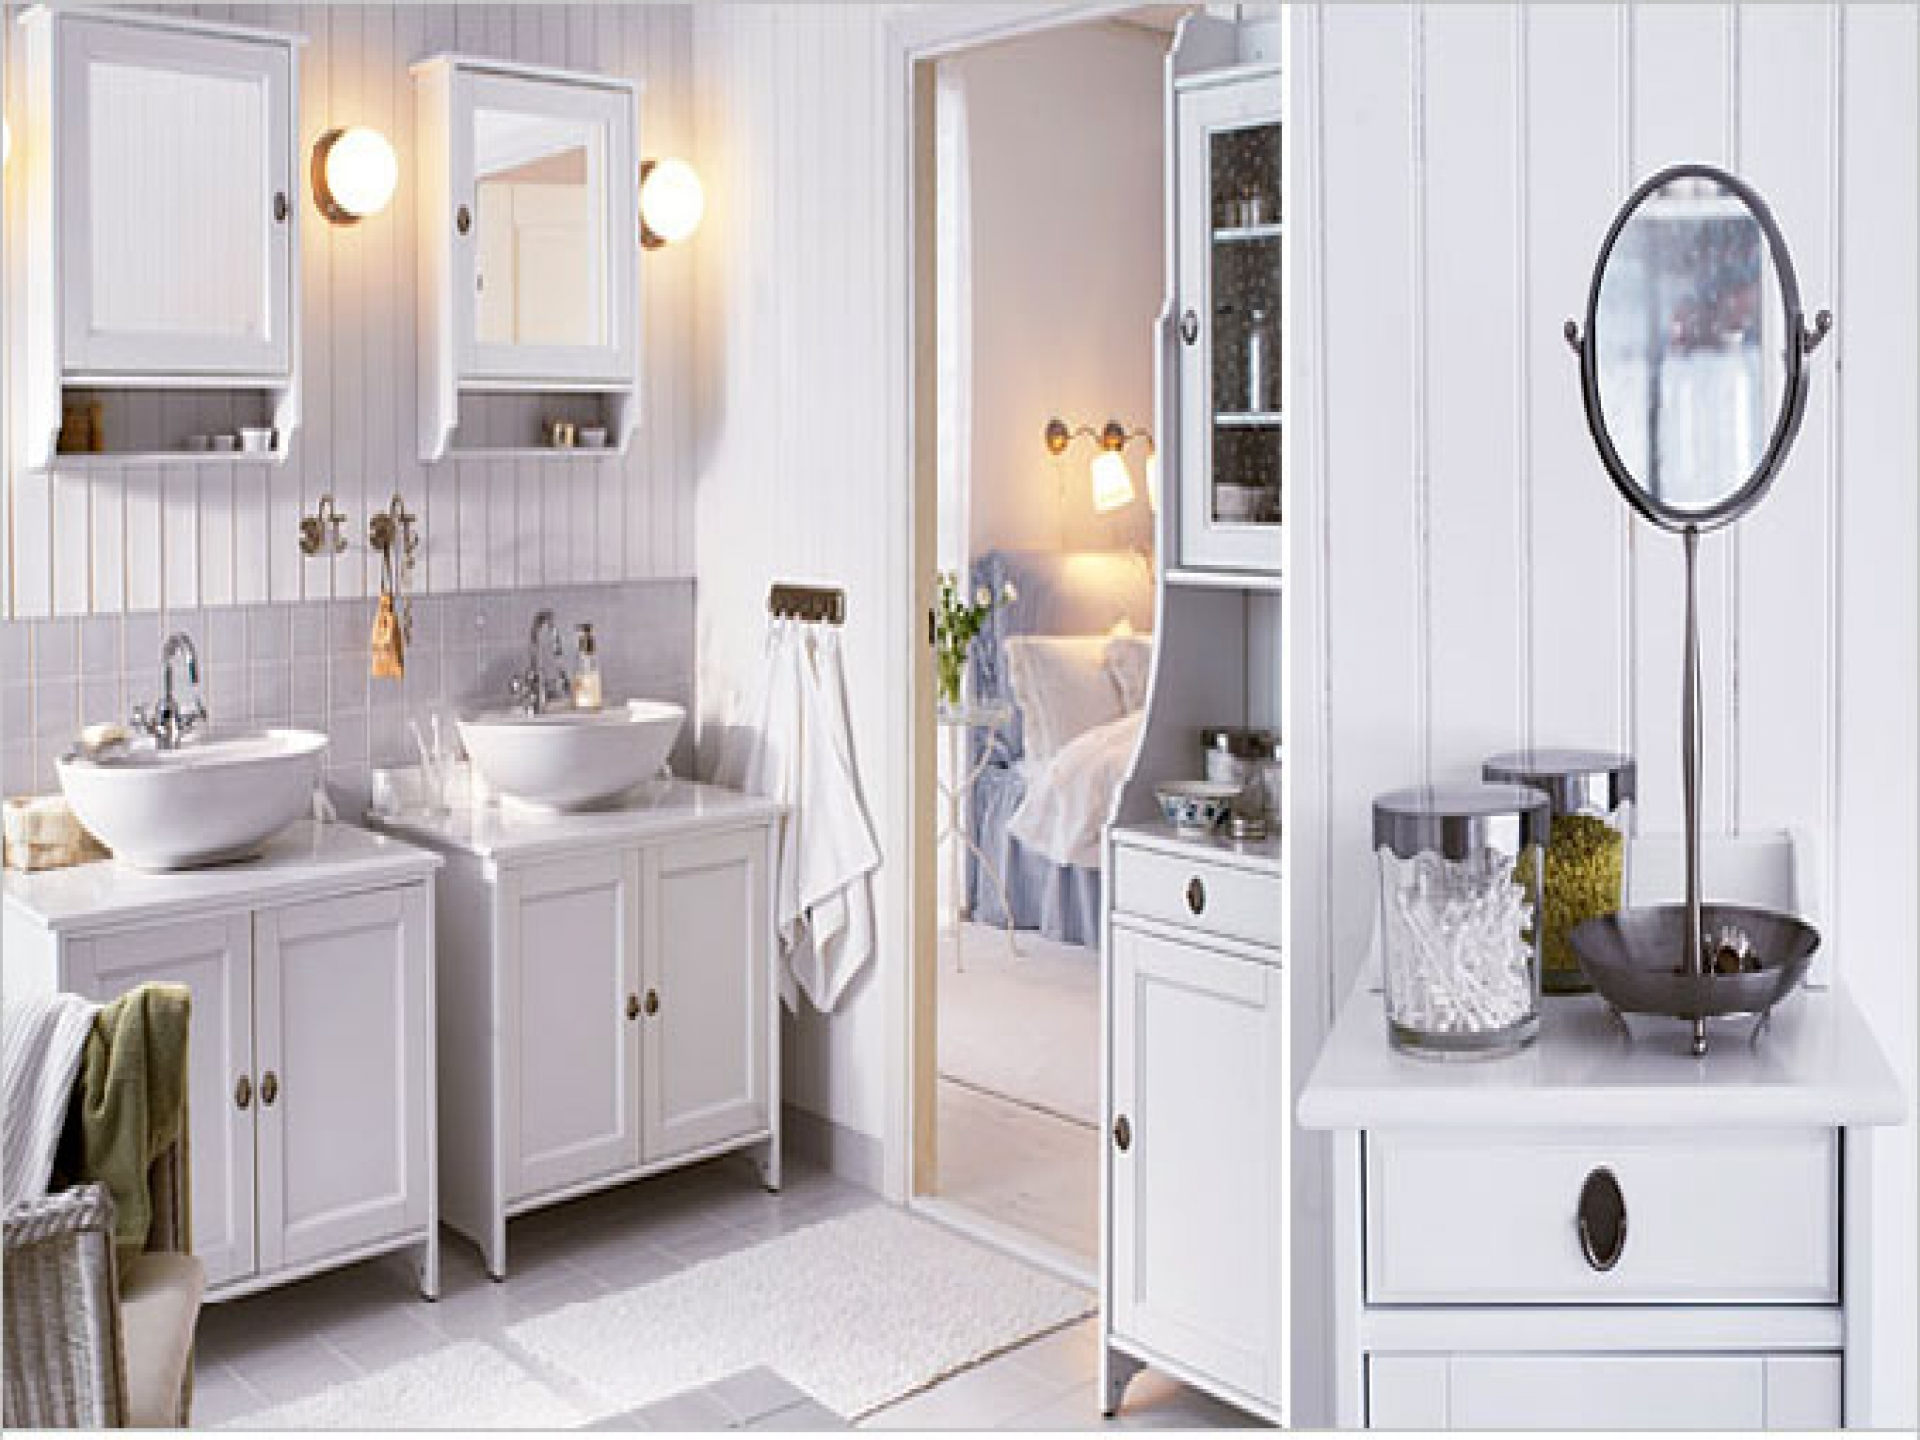 Ikea bath cabinet invades every bathroom with dignity homesfeed - Ikea bathrooms images ...